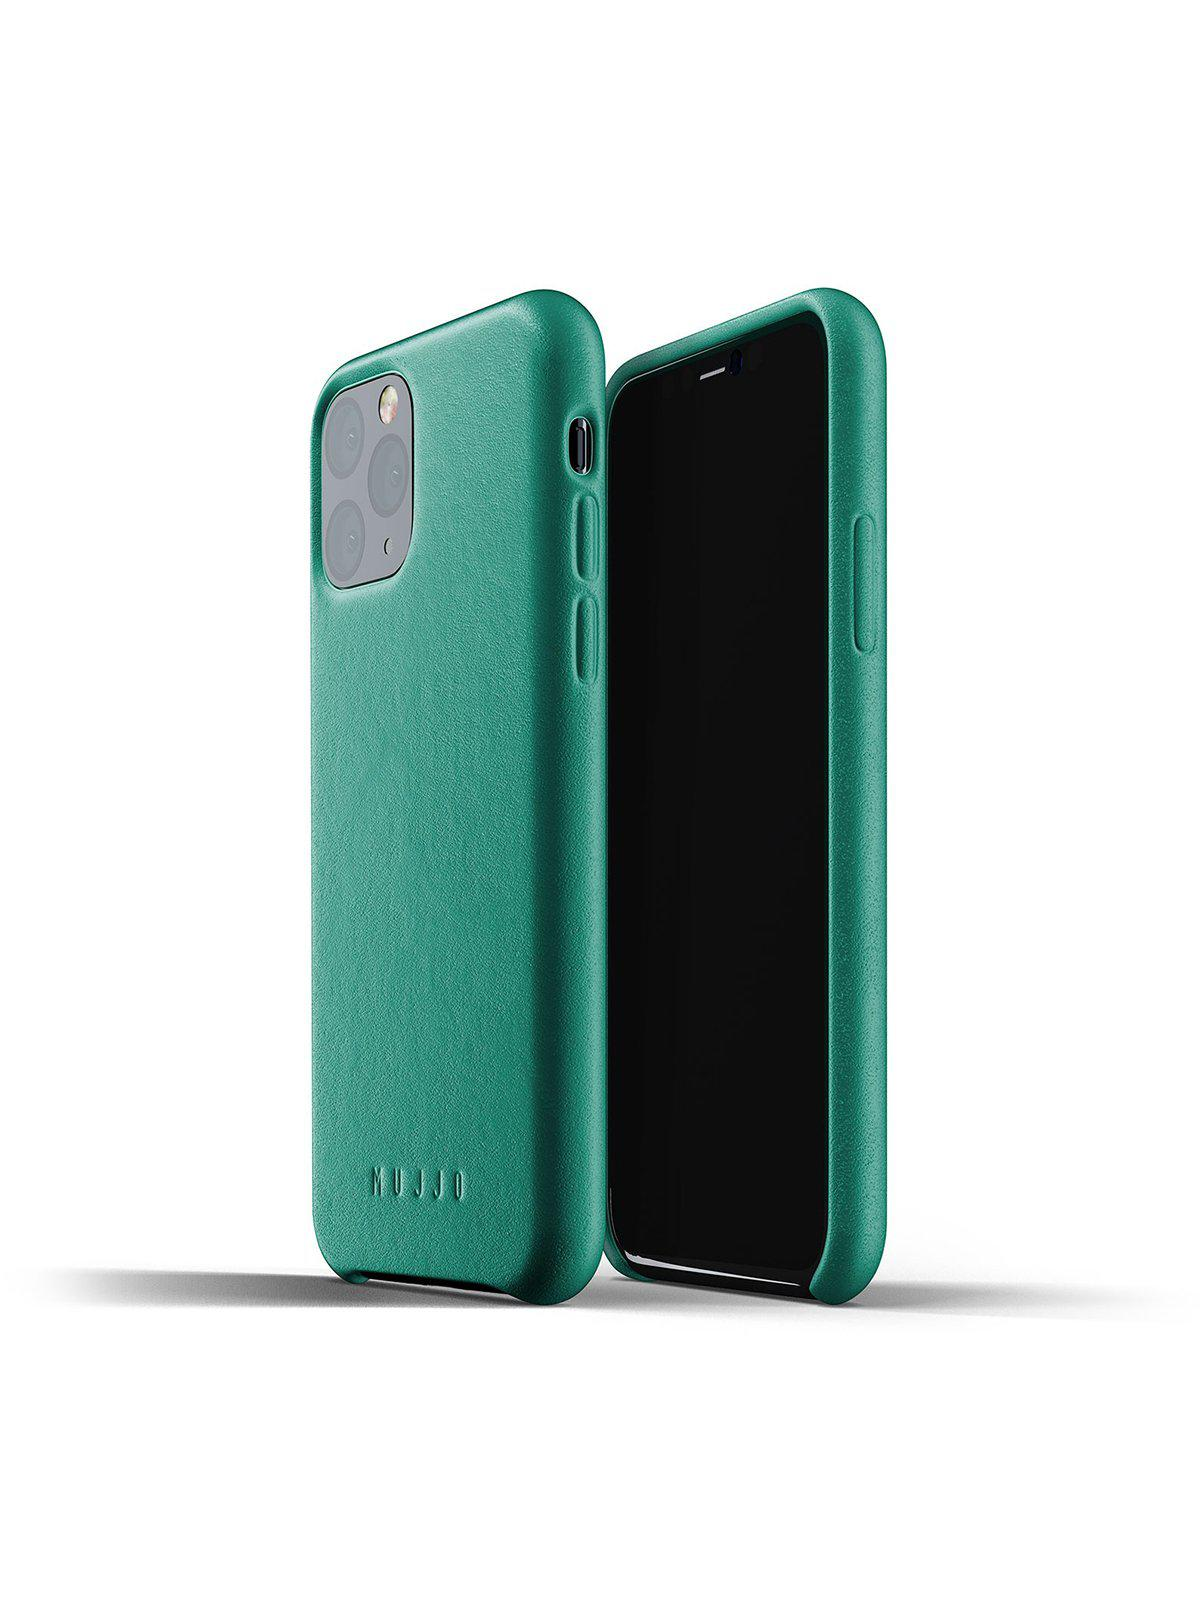 Mujjo Full Leather Case for iPhone 11 Pro Alpine Green - MORE by Morello Indonesia